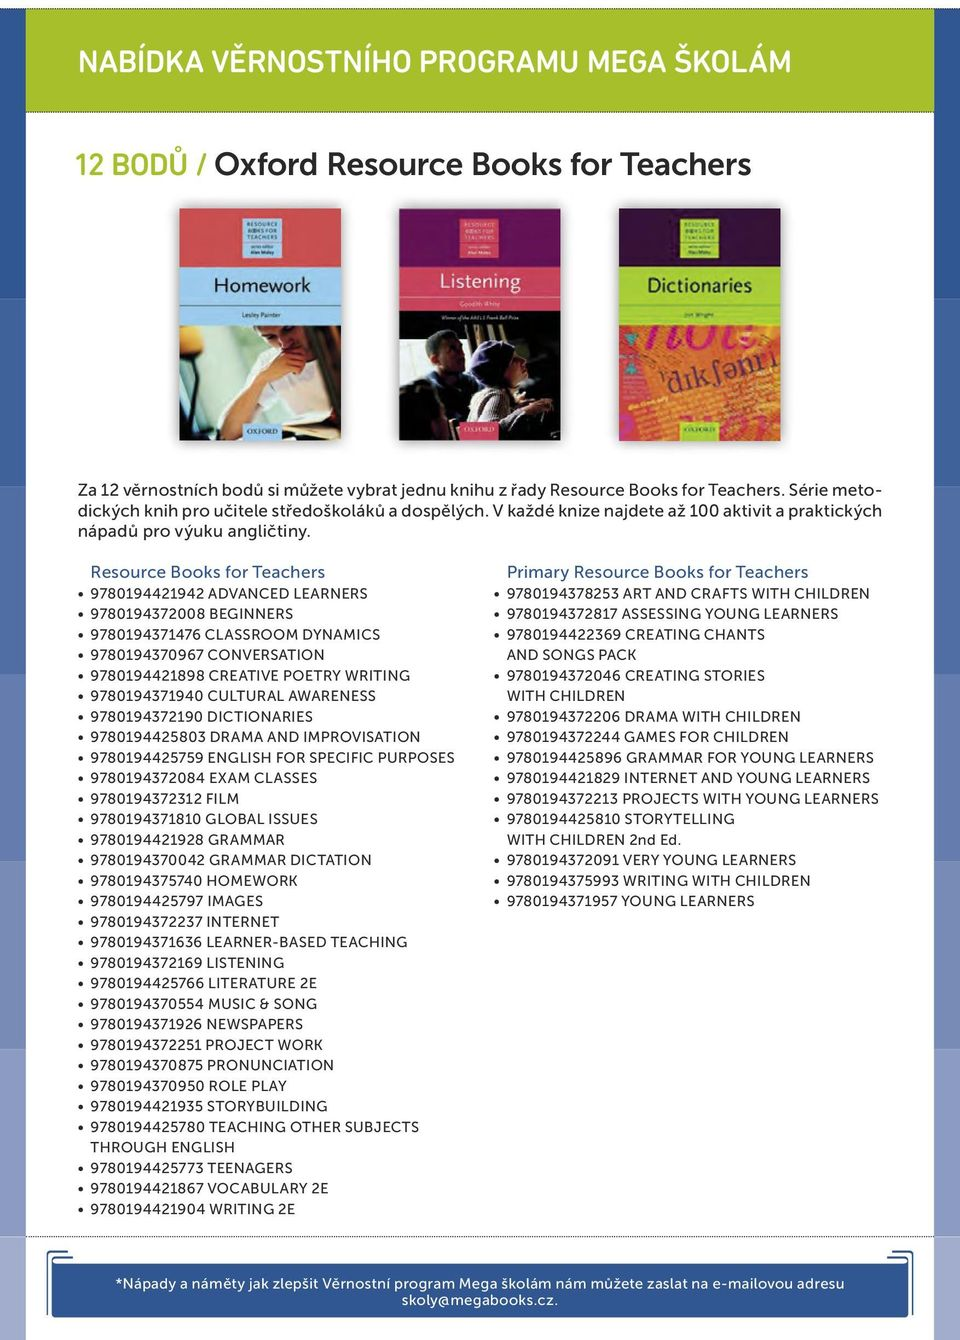 Resource Books for Teachers 9780194421942 ADVANCED LEARNERS 9780194372008 BEGINNERS 9780194371476 CLASSROOM DYNAMICS 9780194370967 CONVERSATION 9780194421898 CREATIVE POETRY WRITING 9780194371940